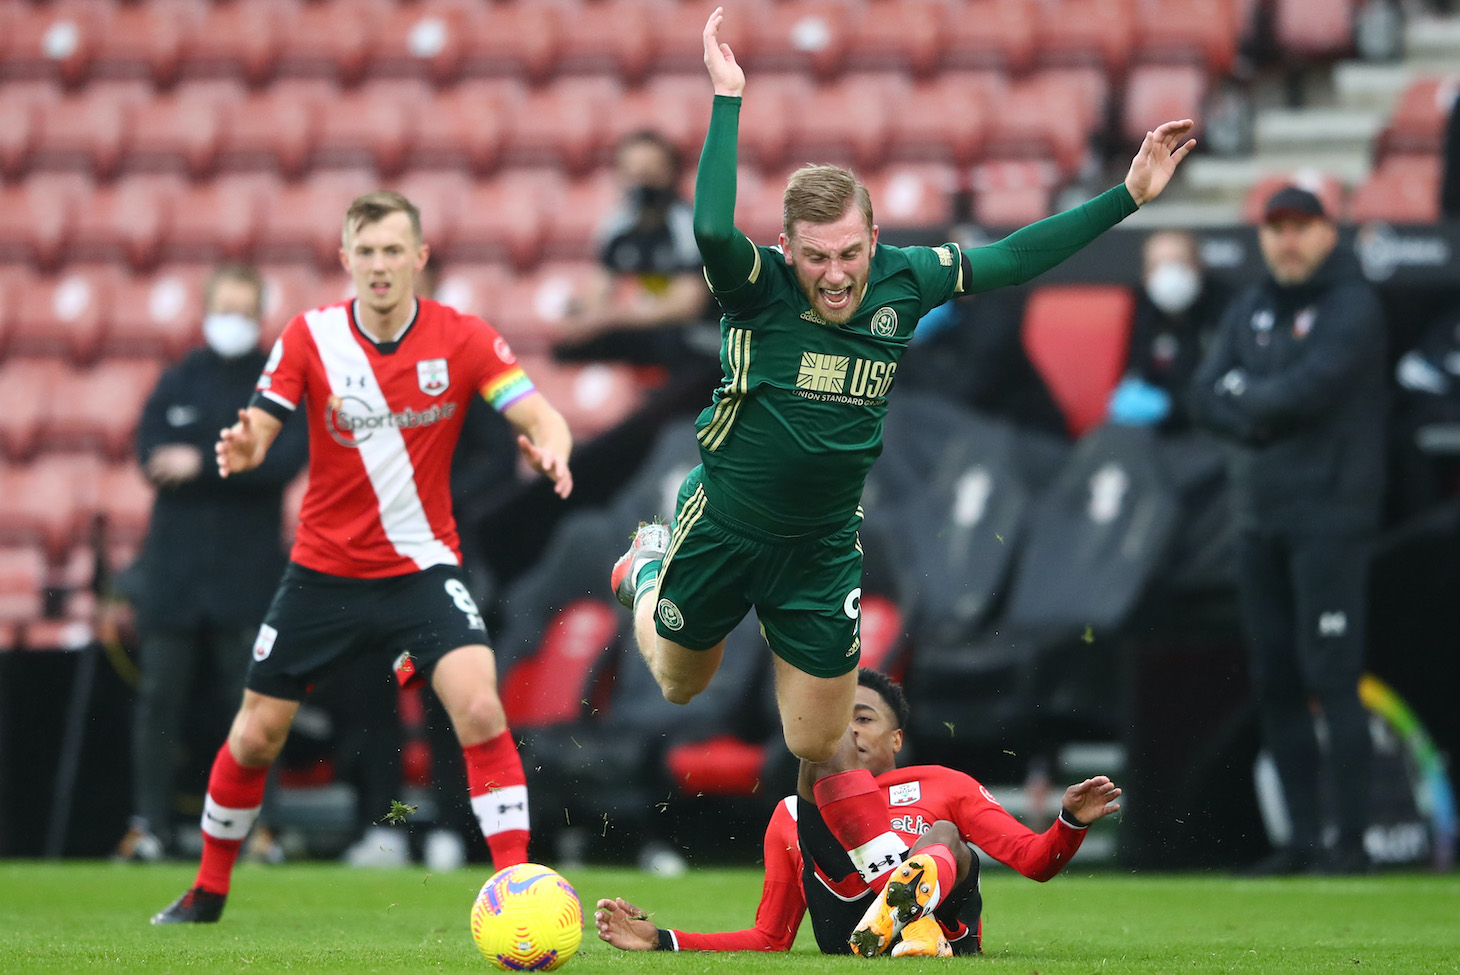 Oliver McBurnie of Sheffield United is fouled by Kyle Walker-Peters of Southampton during the Premier League match between Southampton and Sheffield United at St Mary's Stadium on December 13, 2020 in Southampton, England. A limited number of spectators (2000) are welcomed back to stadiums to watch elite football across England. This was following easing of restrictions on spectators in tiers one and two areas only.